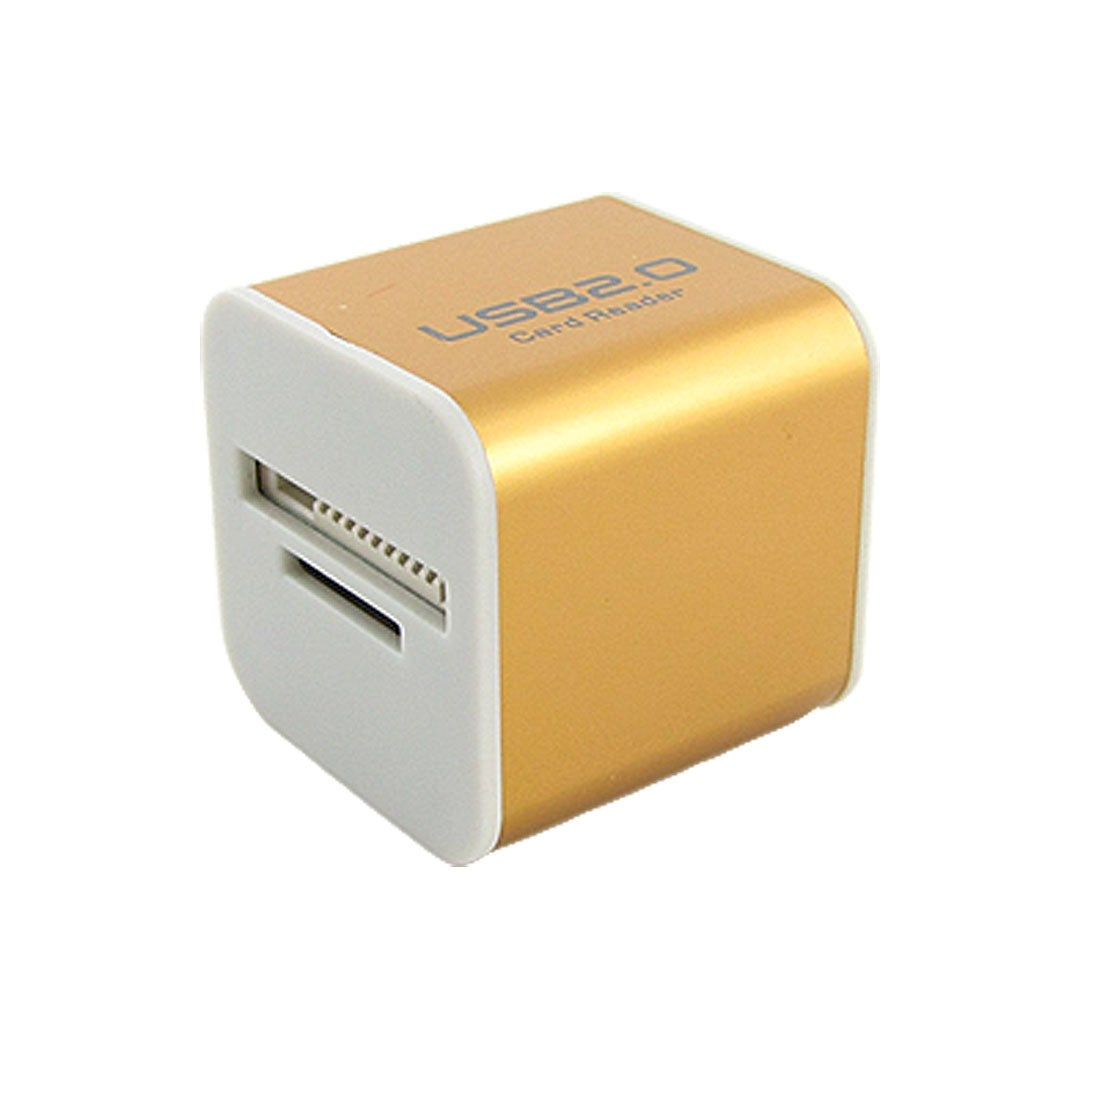 Unique Bargains Laptop Pc Mini Sd Mmc Card Reader Gold Tone W Usb Transcend Rdf8 30 Black Cable Free Shipping On Orders Over 45 Overstock 23864378